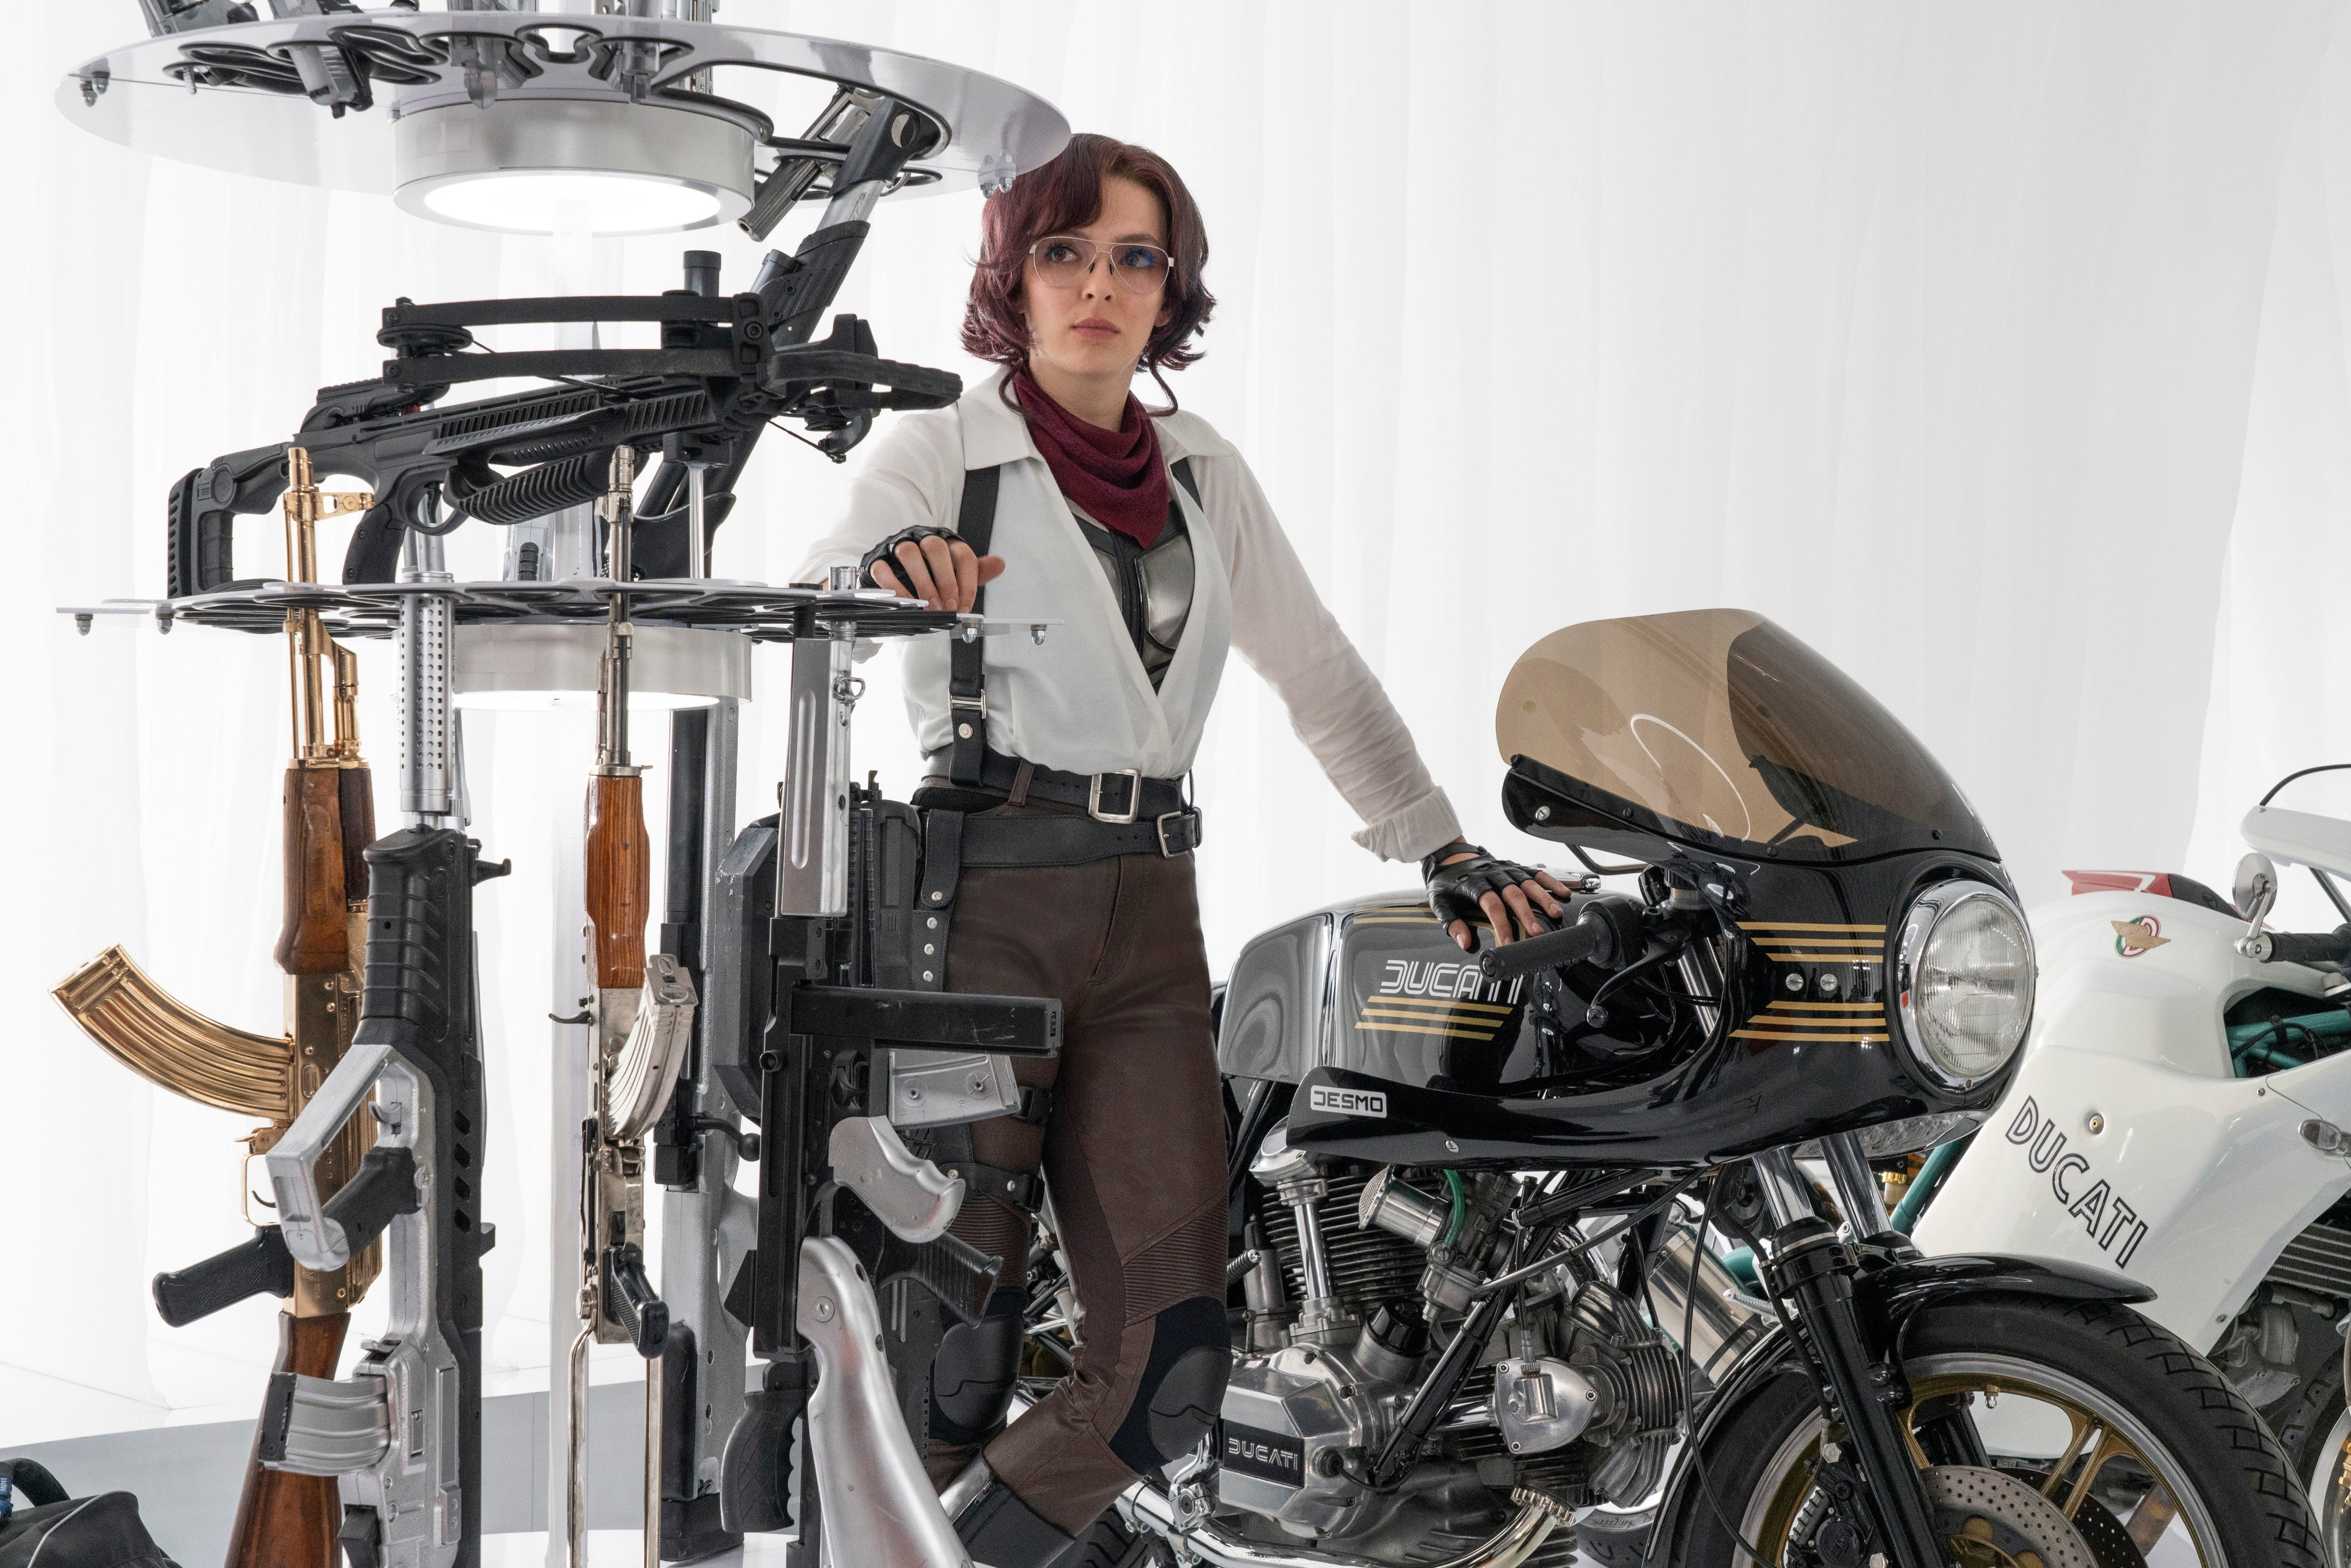 Jodie Comer leans up against a motorcycle in a scene from Free Guy